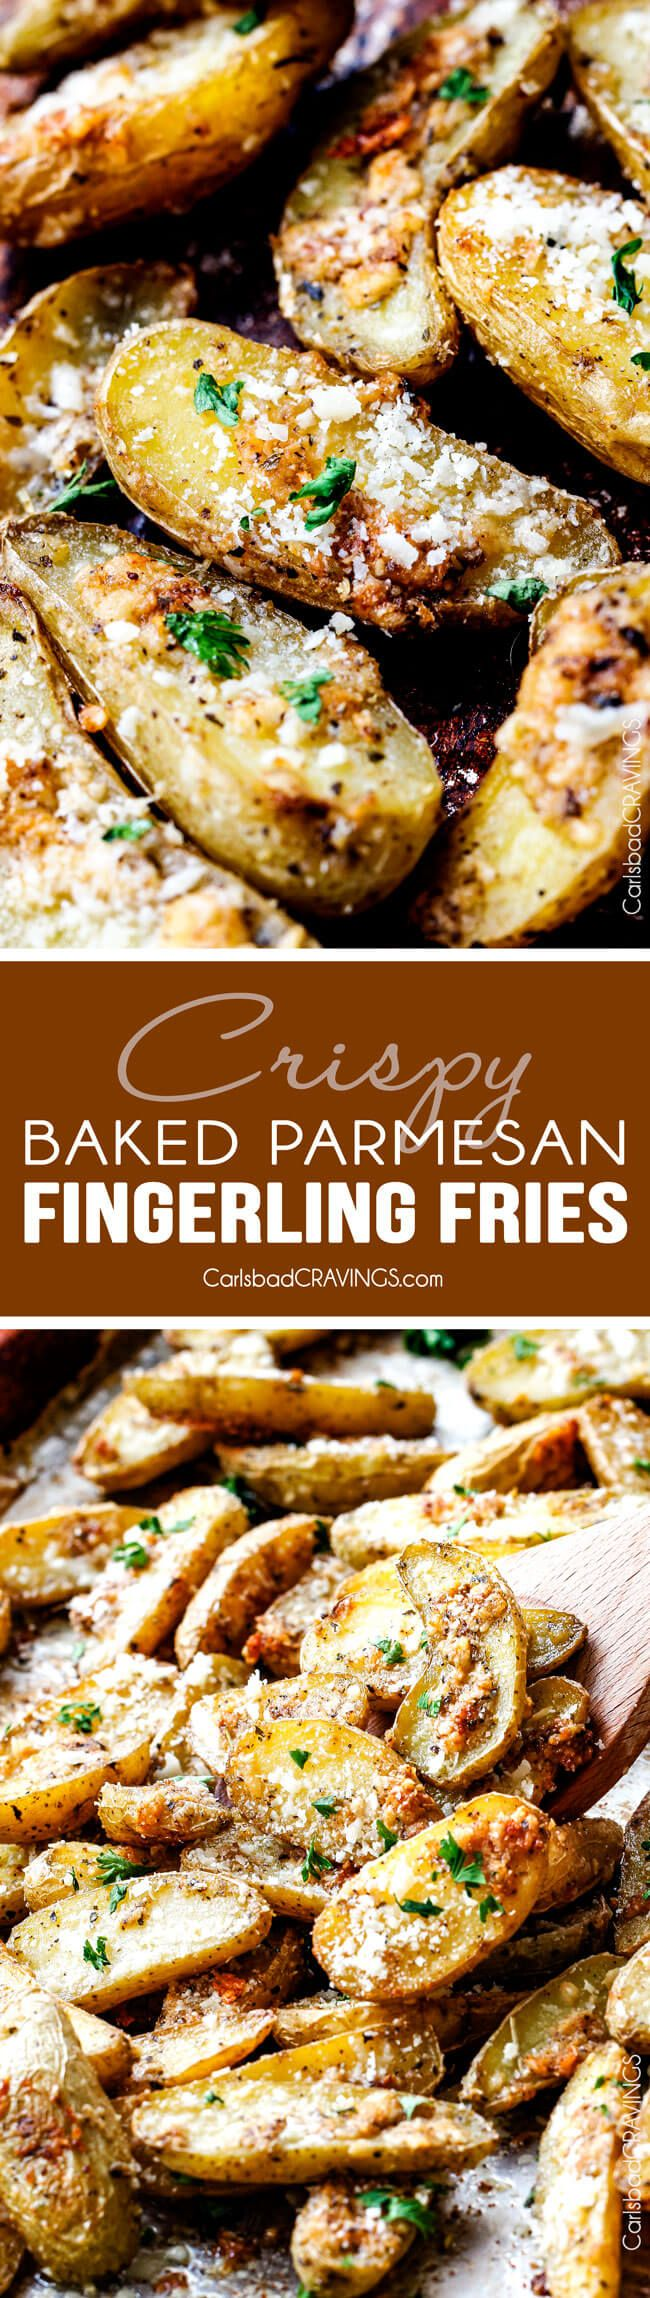 Easy baked Parmesan Fingerling Potato Fries with a crispy exterior and creamy buttery interior spiced to perfection make the perfect appetizer, snack or side you won't be able to stop munching!  via @carlsbadcraving